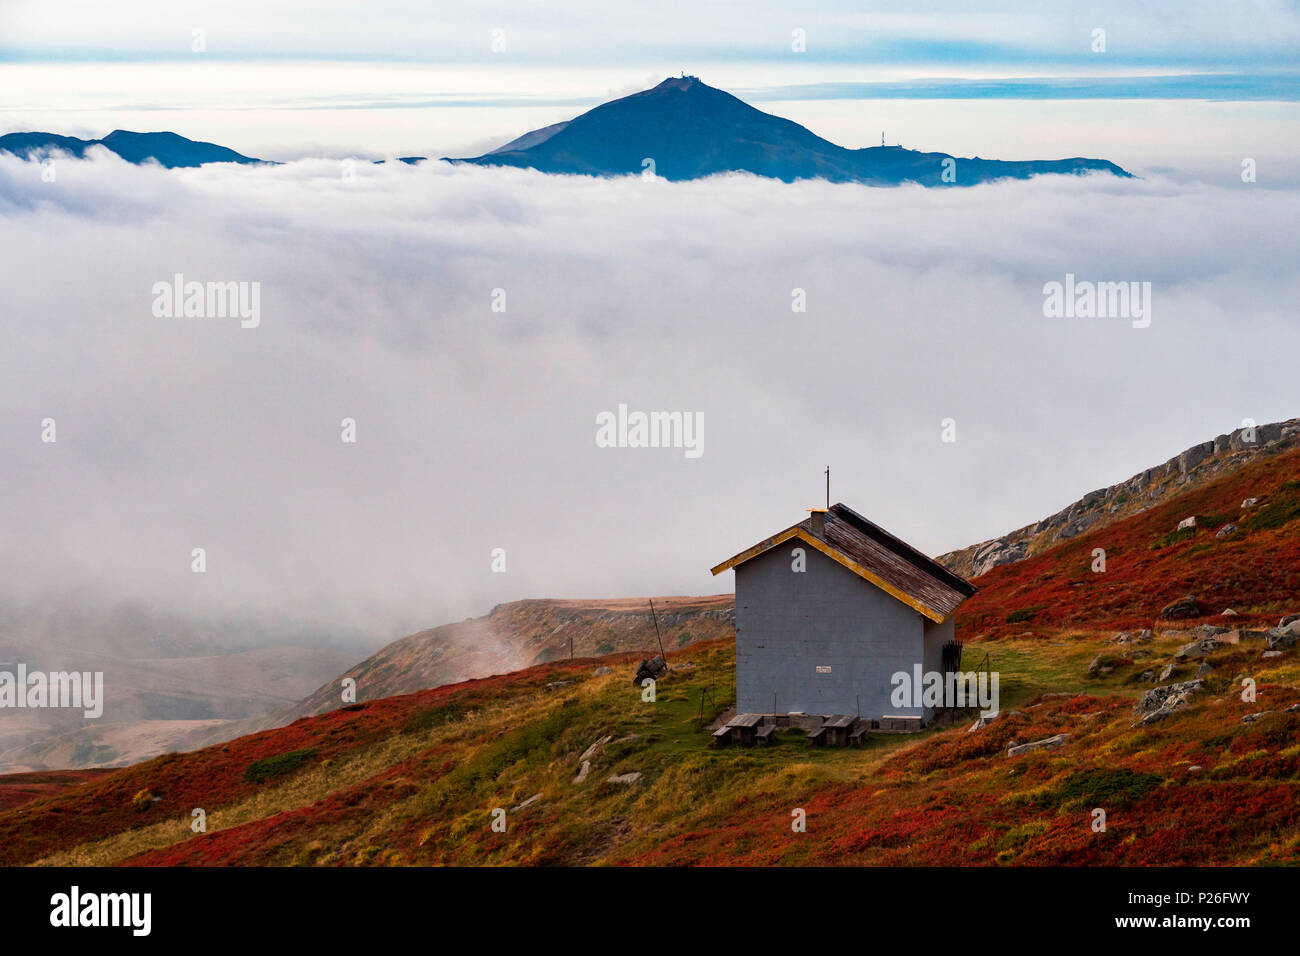 Mount Cimone emerges from the clouds, Corno alle scale, Appennines, Bologna province, Emilia Romagna, Italy, Europe - Stock Image